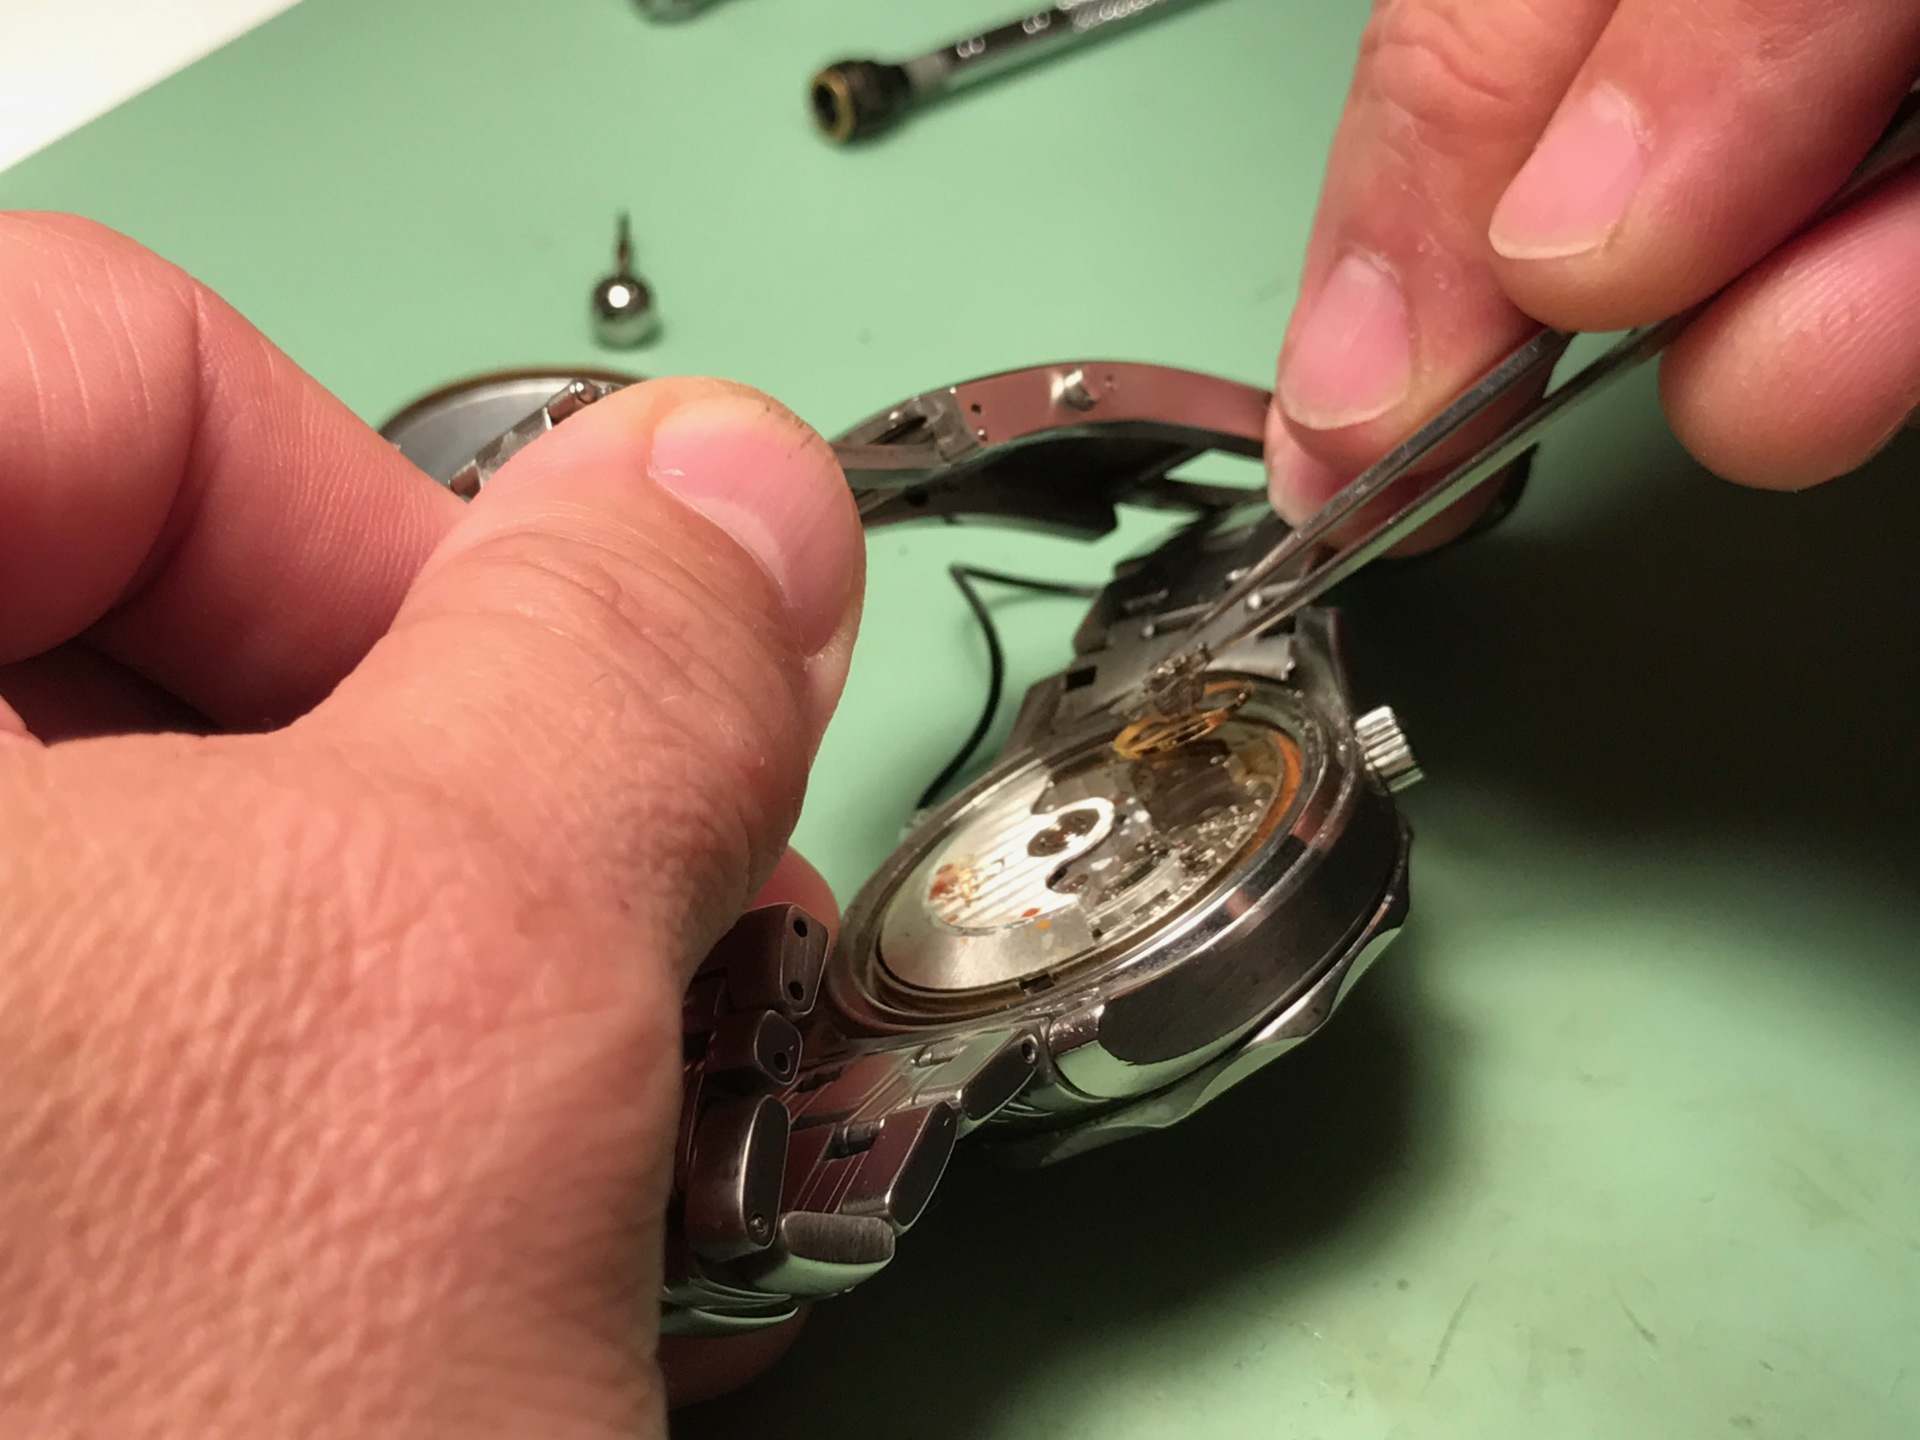 Professional watch repairs